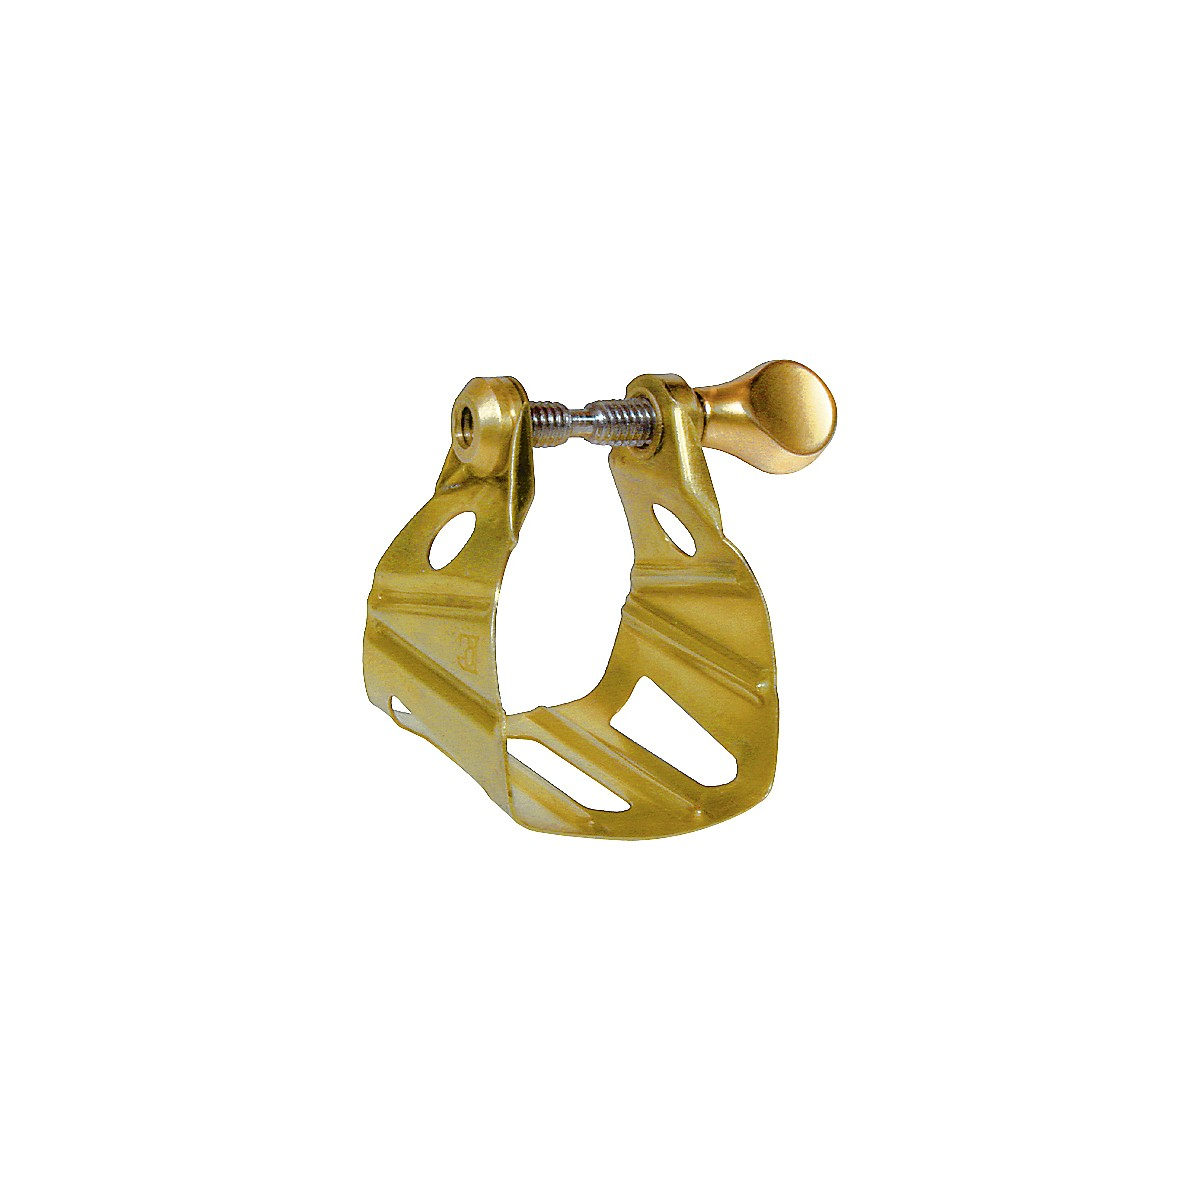 BG Lacquered Metal Jazz Saxophone Ligature